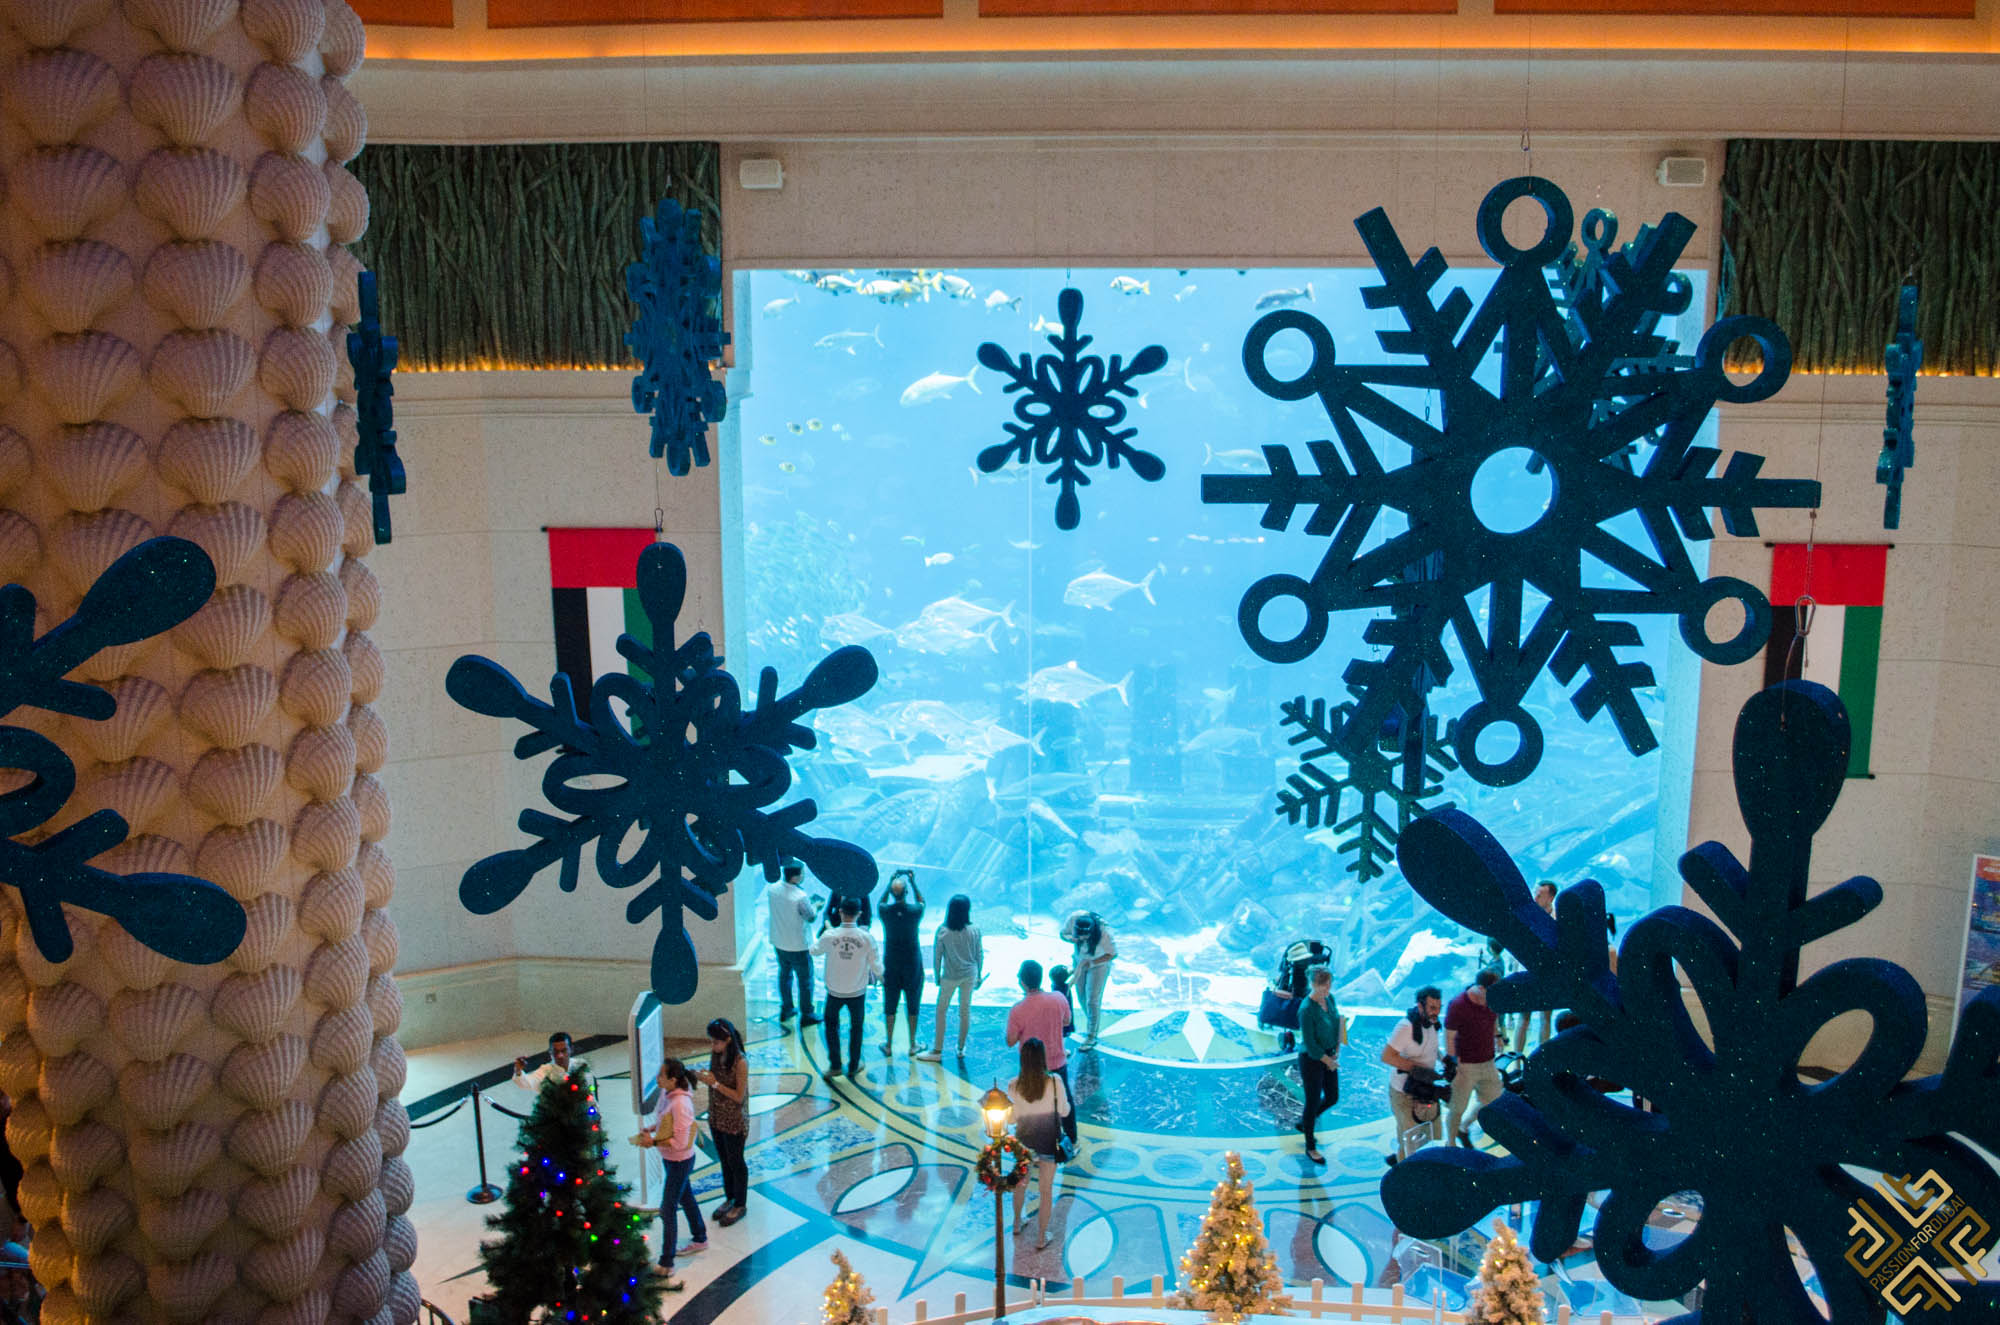 atlantis-the-palm-hotel-christmas-1